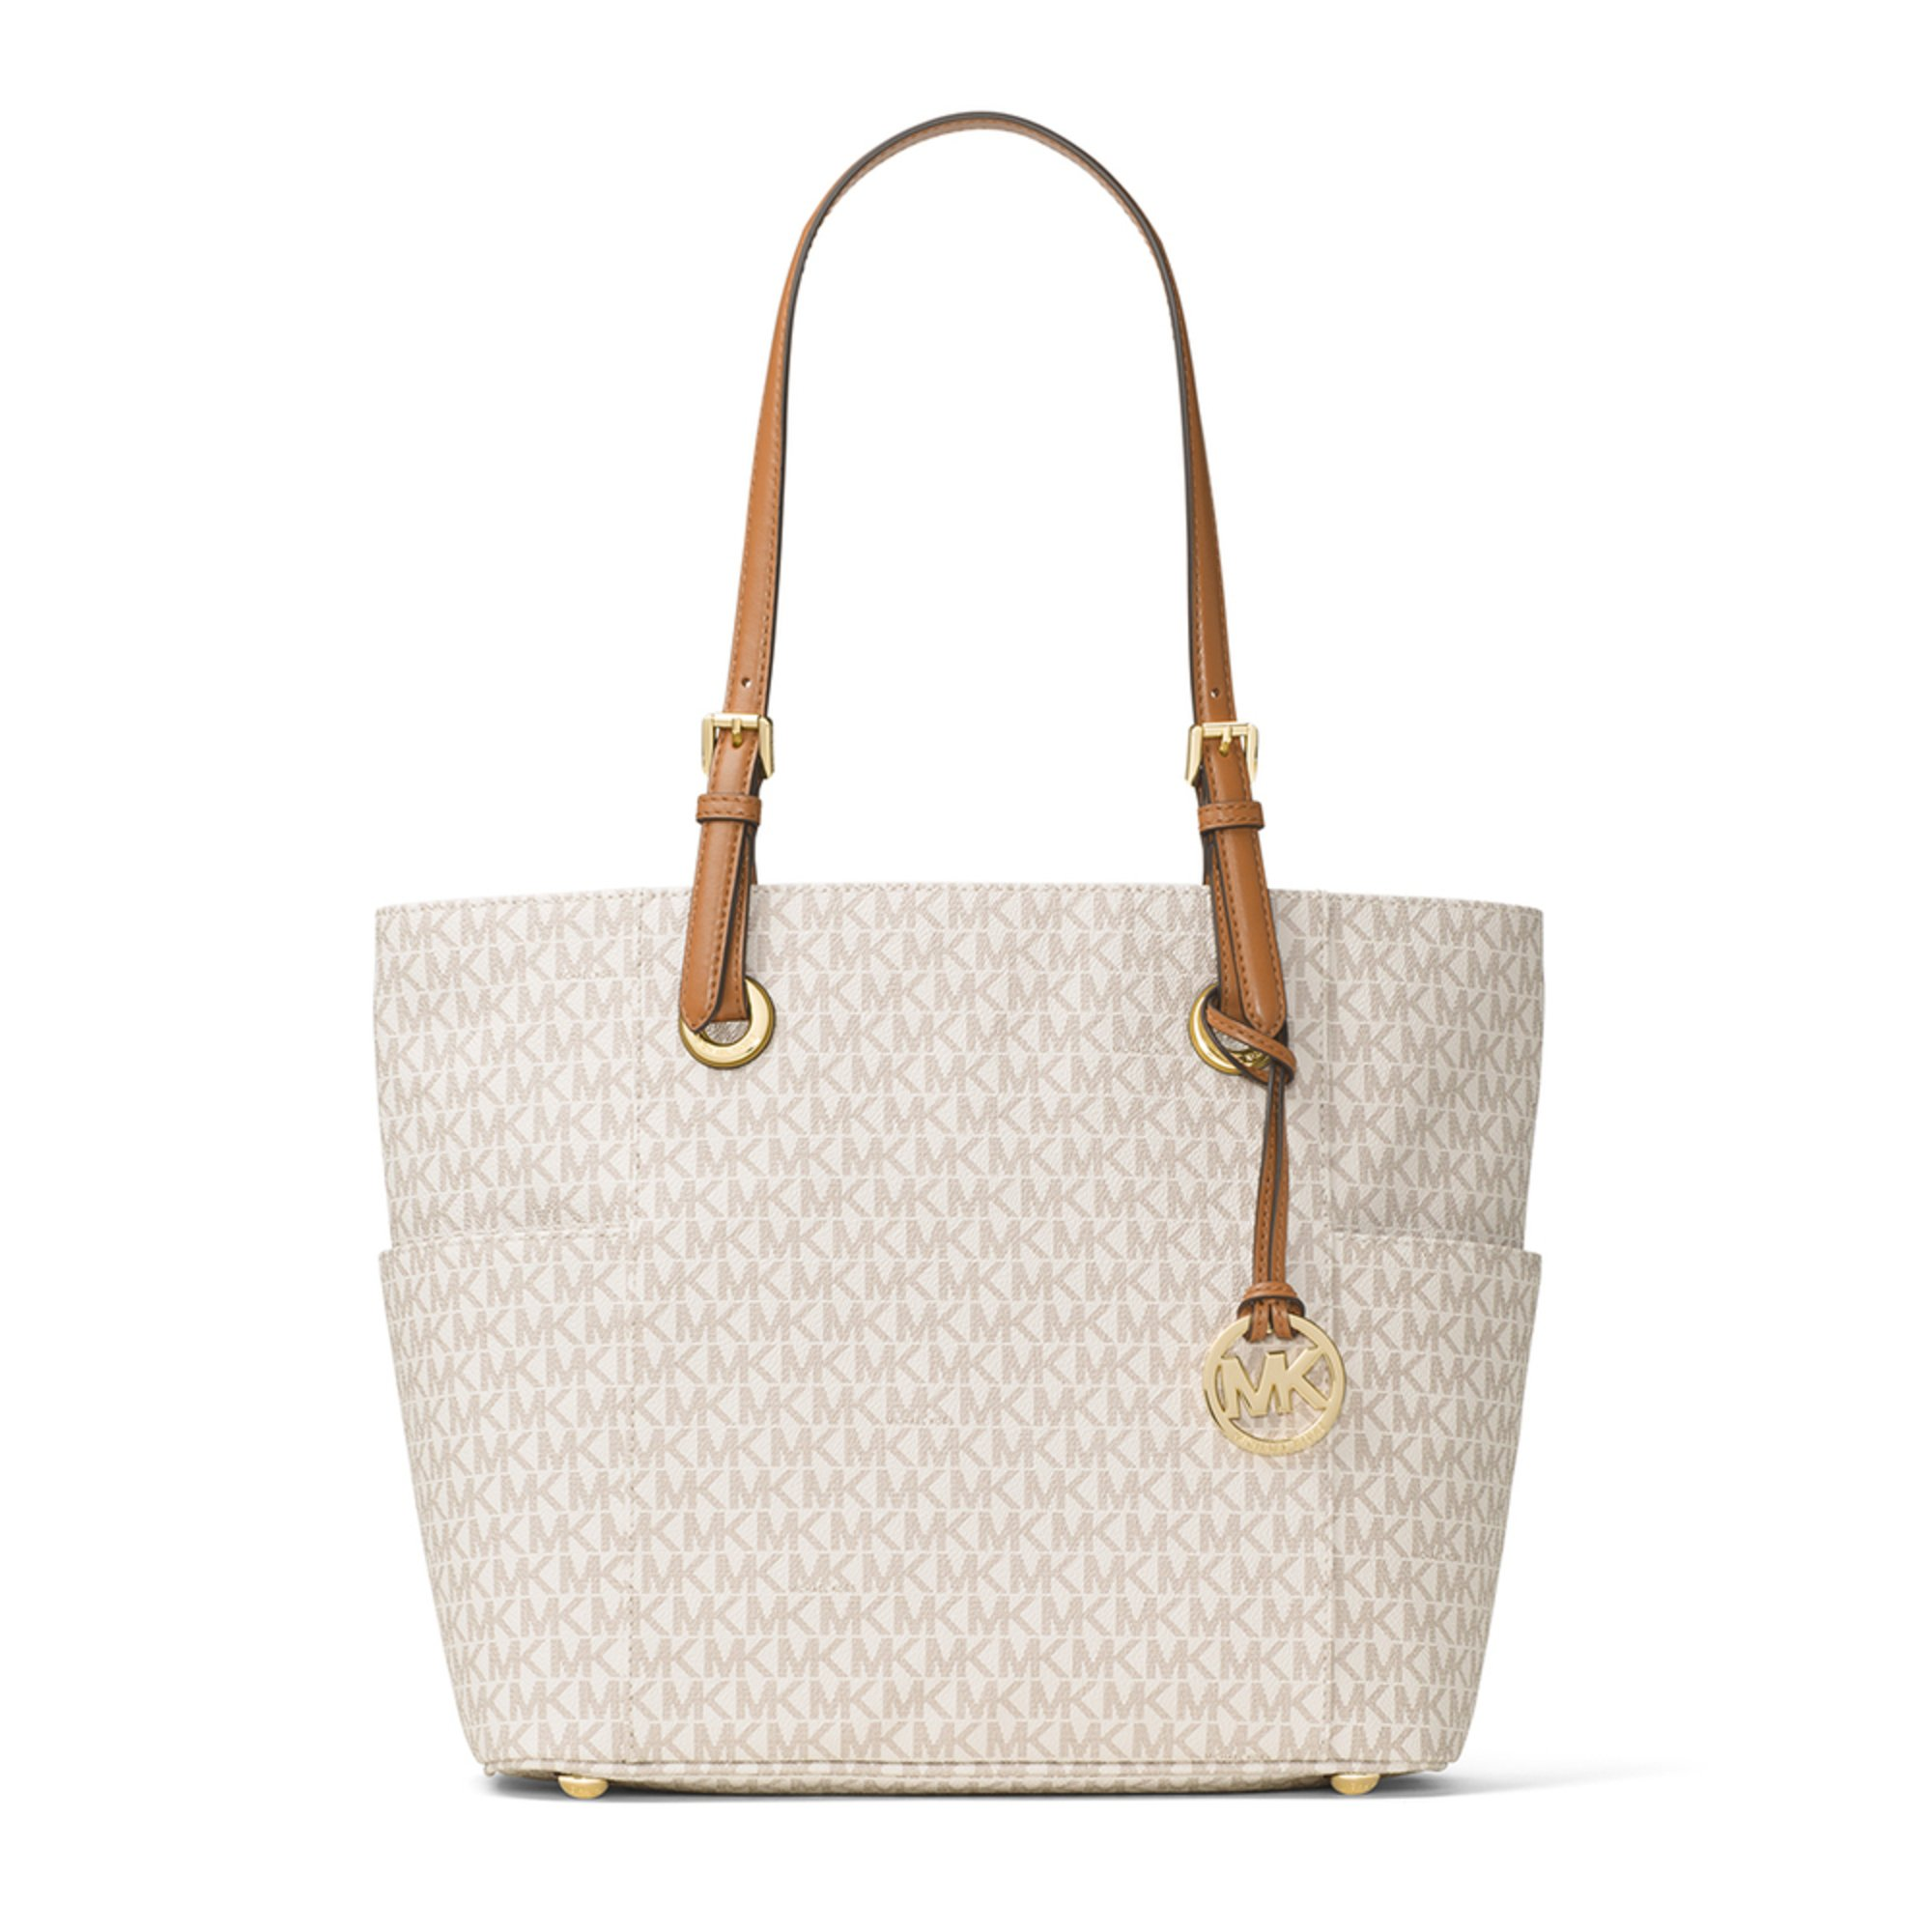 We have a wide range of styles that include wholesale must-haves handbags, clutch bags, fashion bags, satchels, totes, hobo bags, top handle bags, backpack purses, messenger bags, clothing and acessories, and cross body bags. Wholesale Purse for Sale in Every Color.